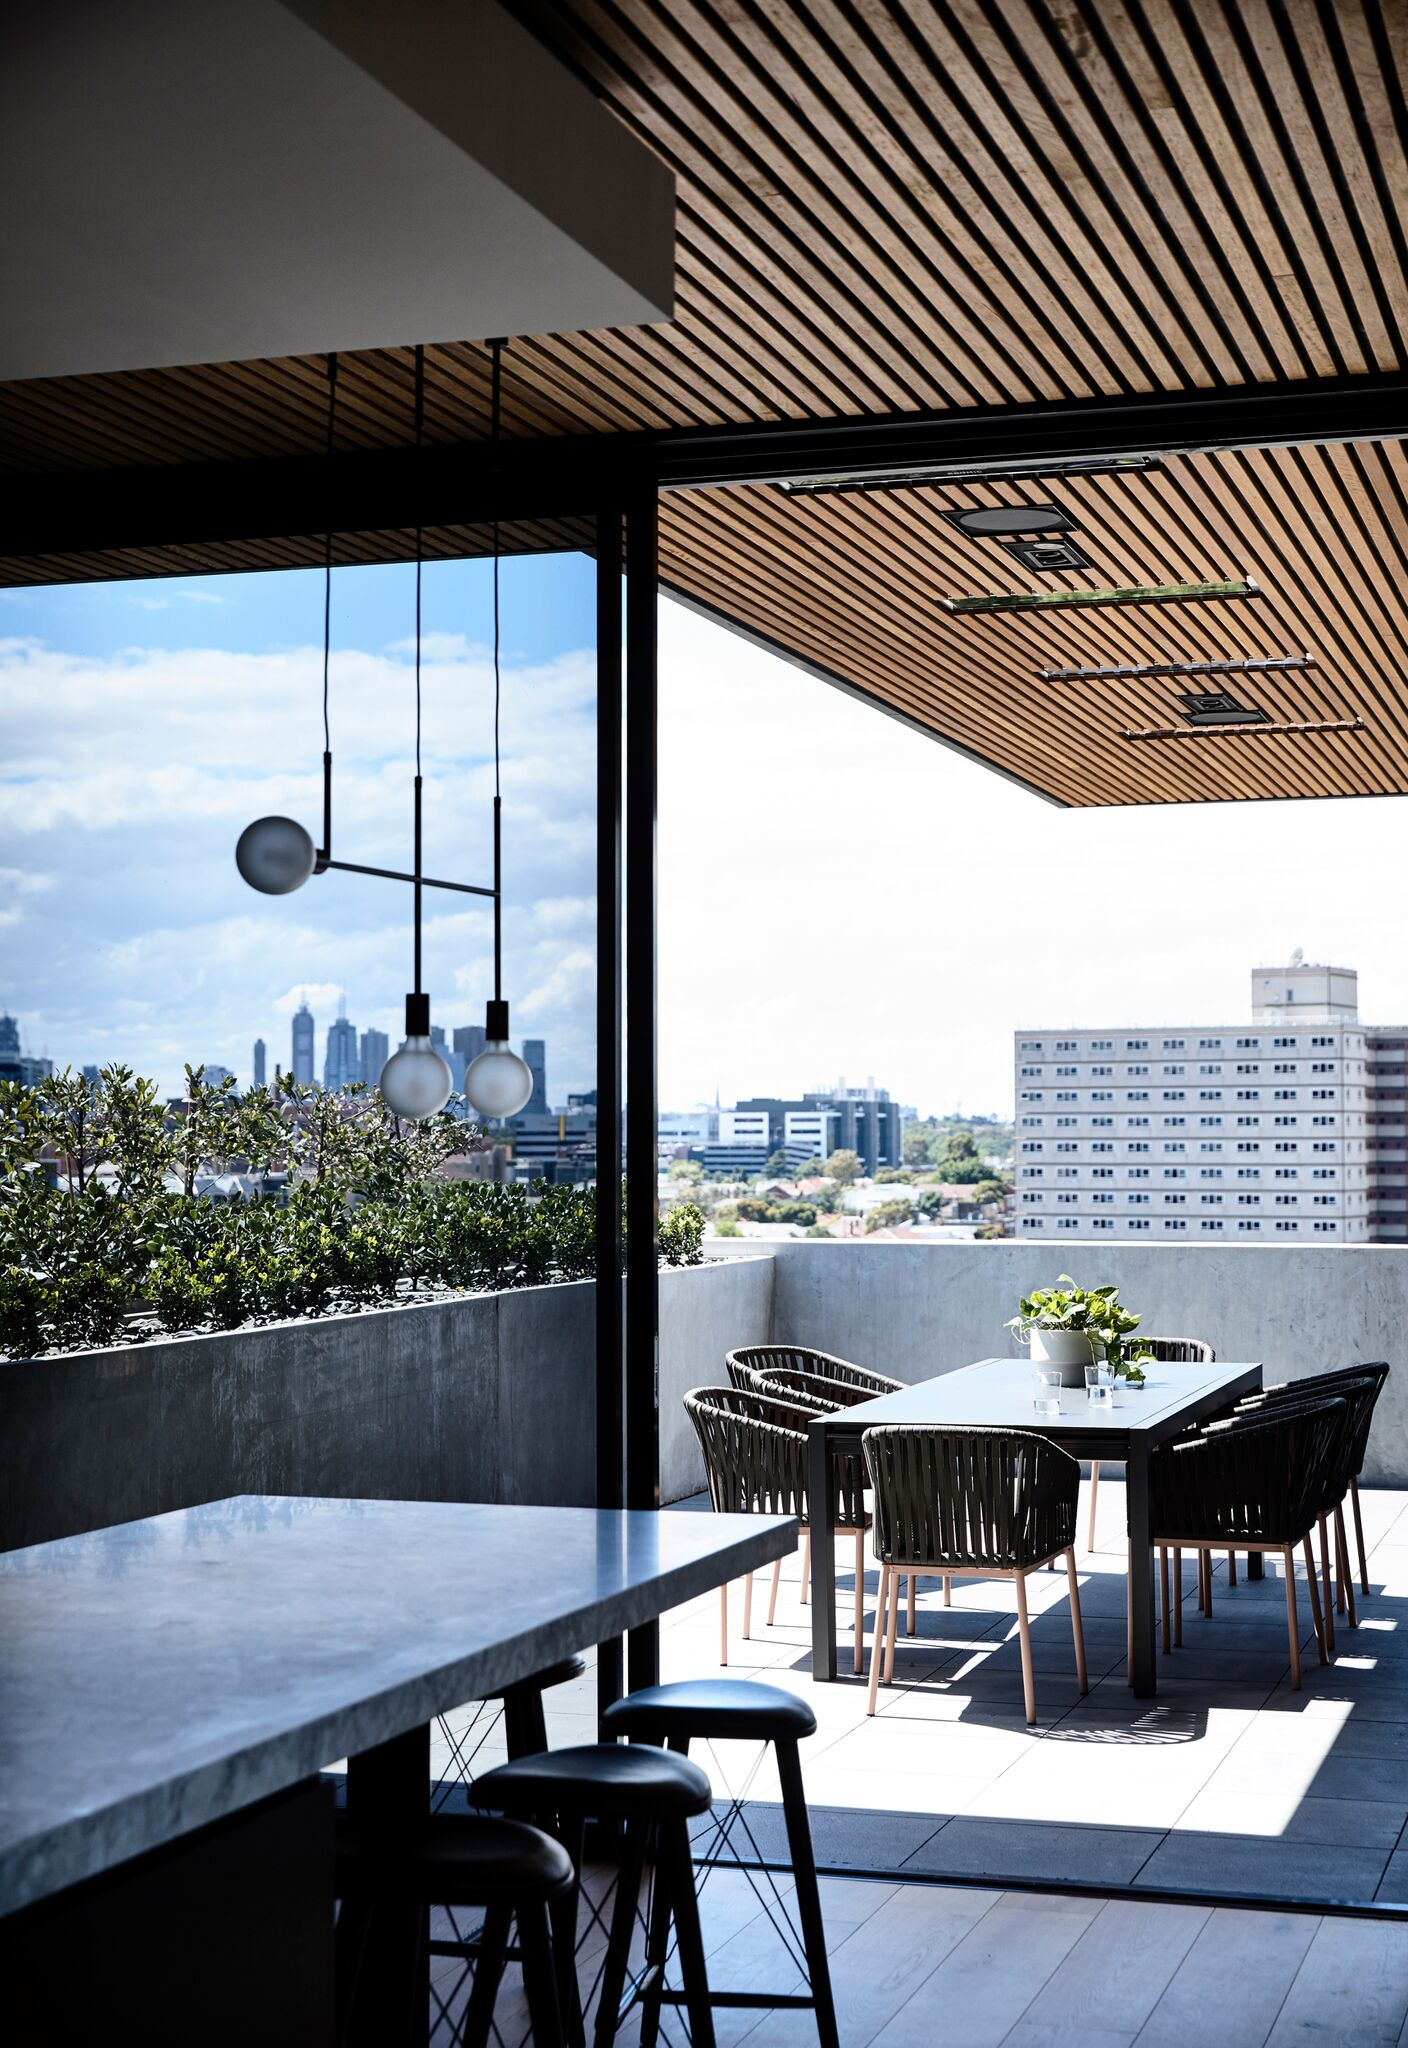 Gallery Of Holly Penthouse By Tom Robertson Architects Local Australian Bespoke Architecture & Interiors Melbourne, Vic Image 8